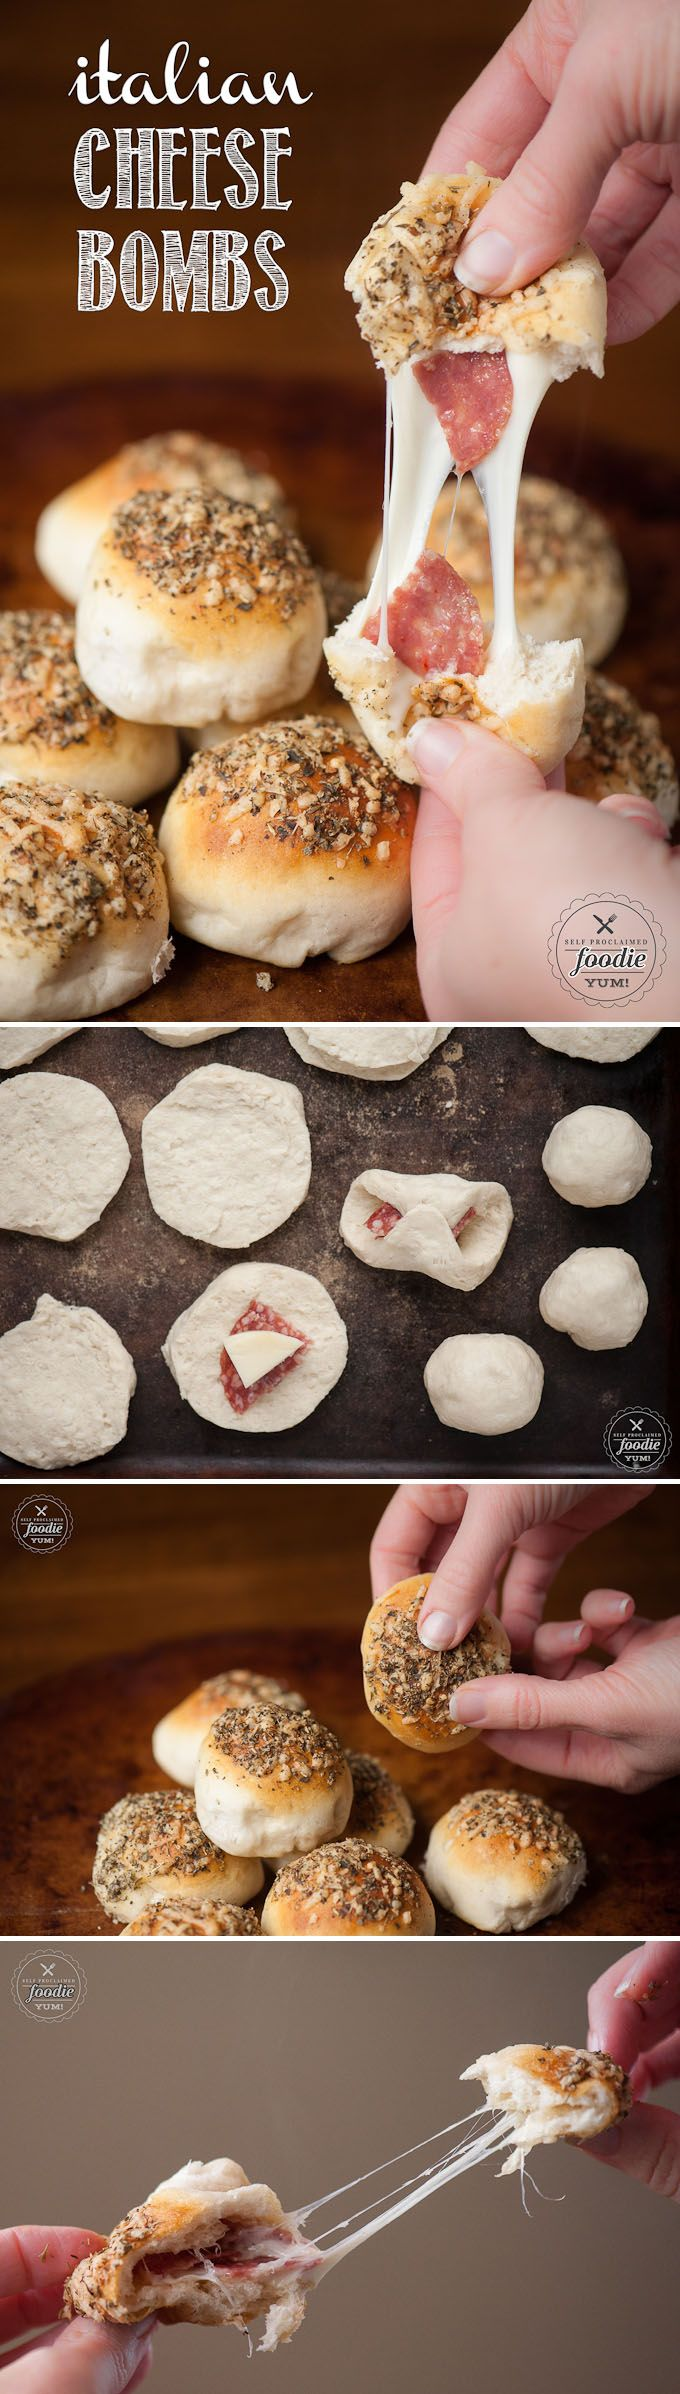 These Italian Cheese Bombs take only minutes to prepare using premade biscuit dough and the ooey gooey cheese and salami will be everyone's favorite.